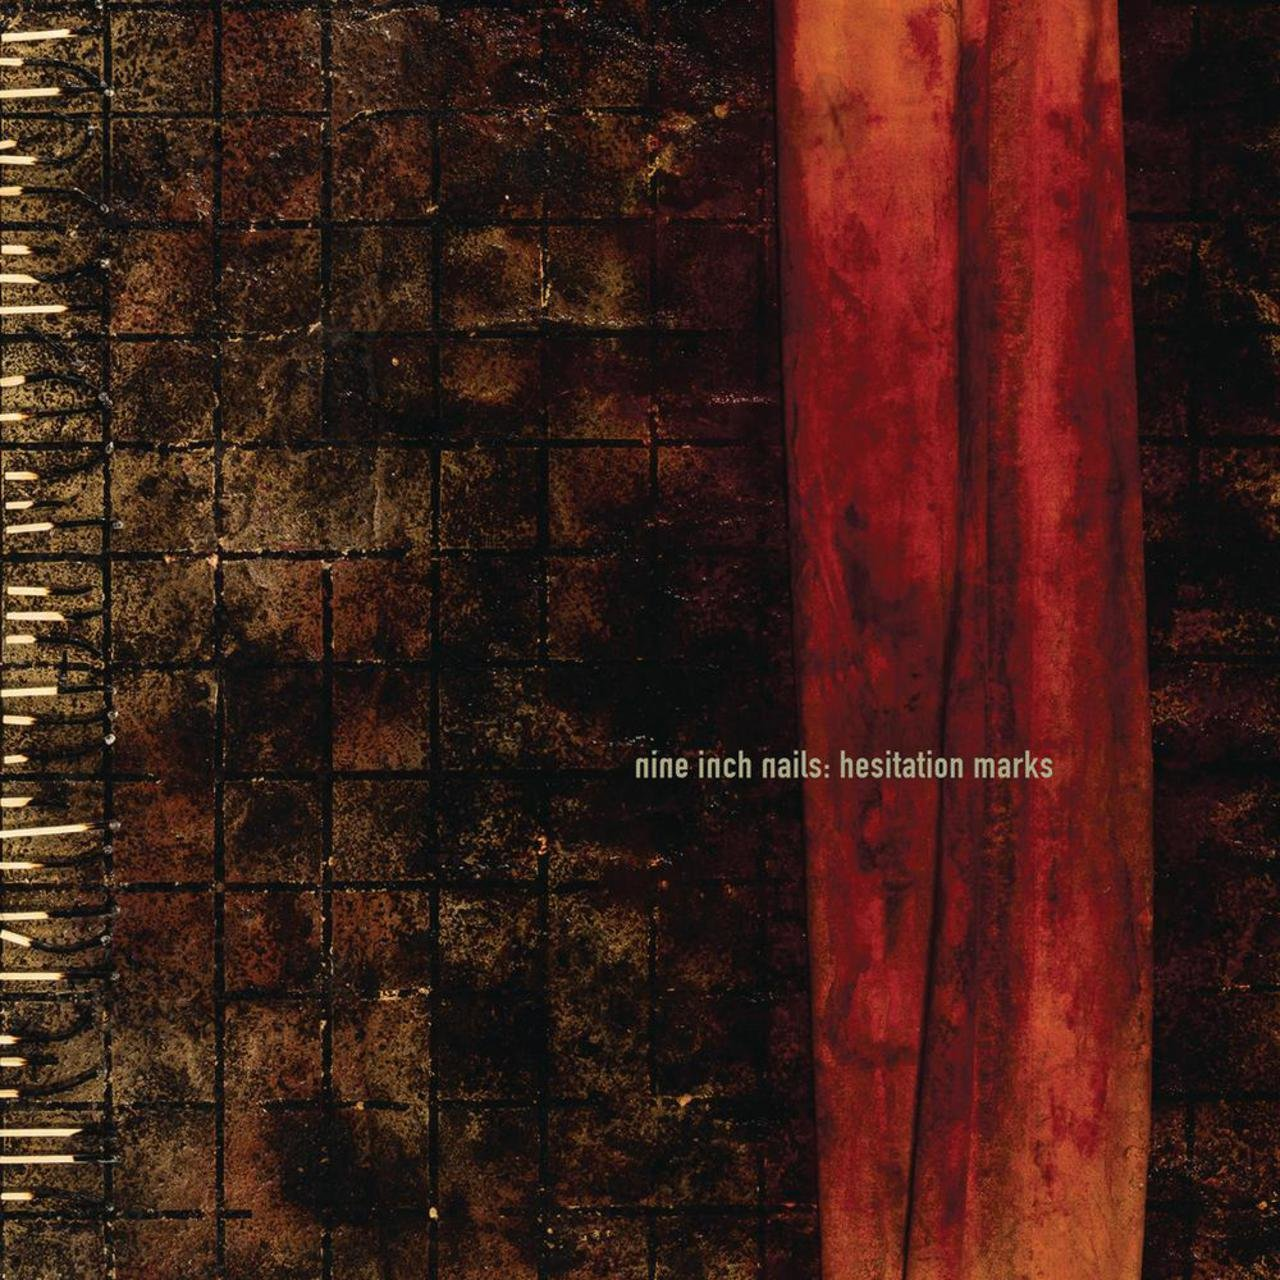 TIDAL: Listen to Nine Inch Nails on TIDAL